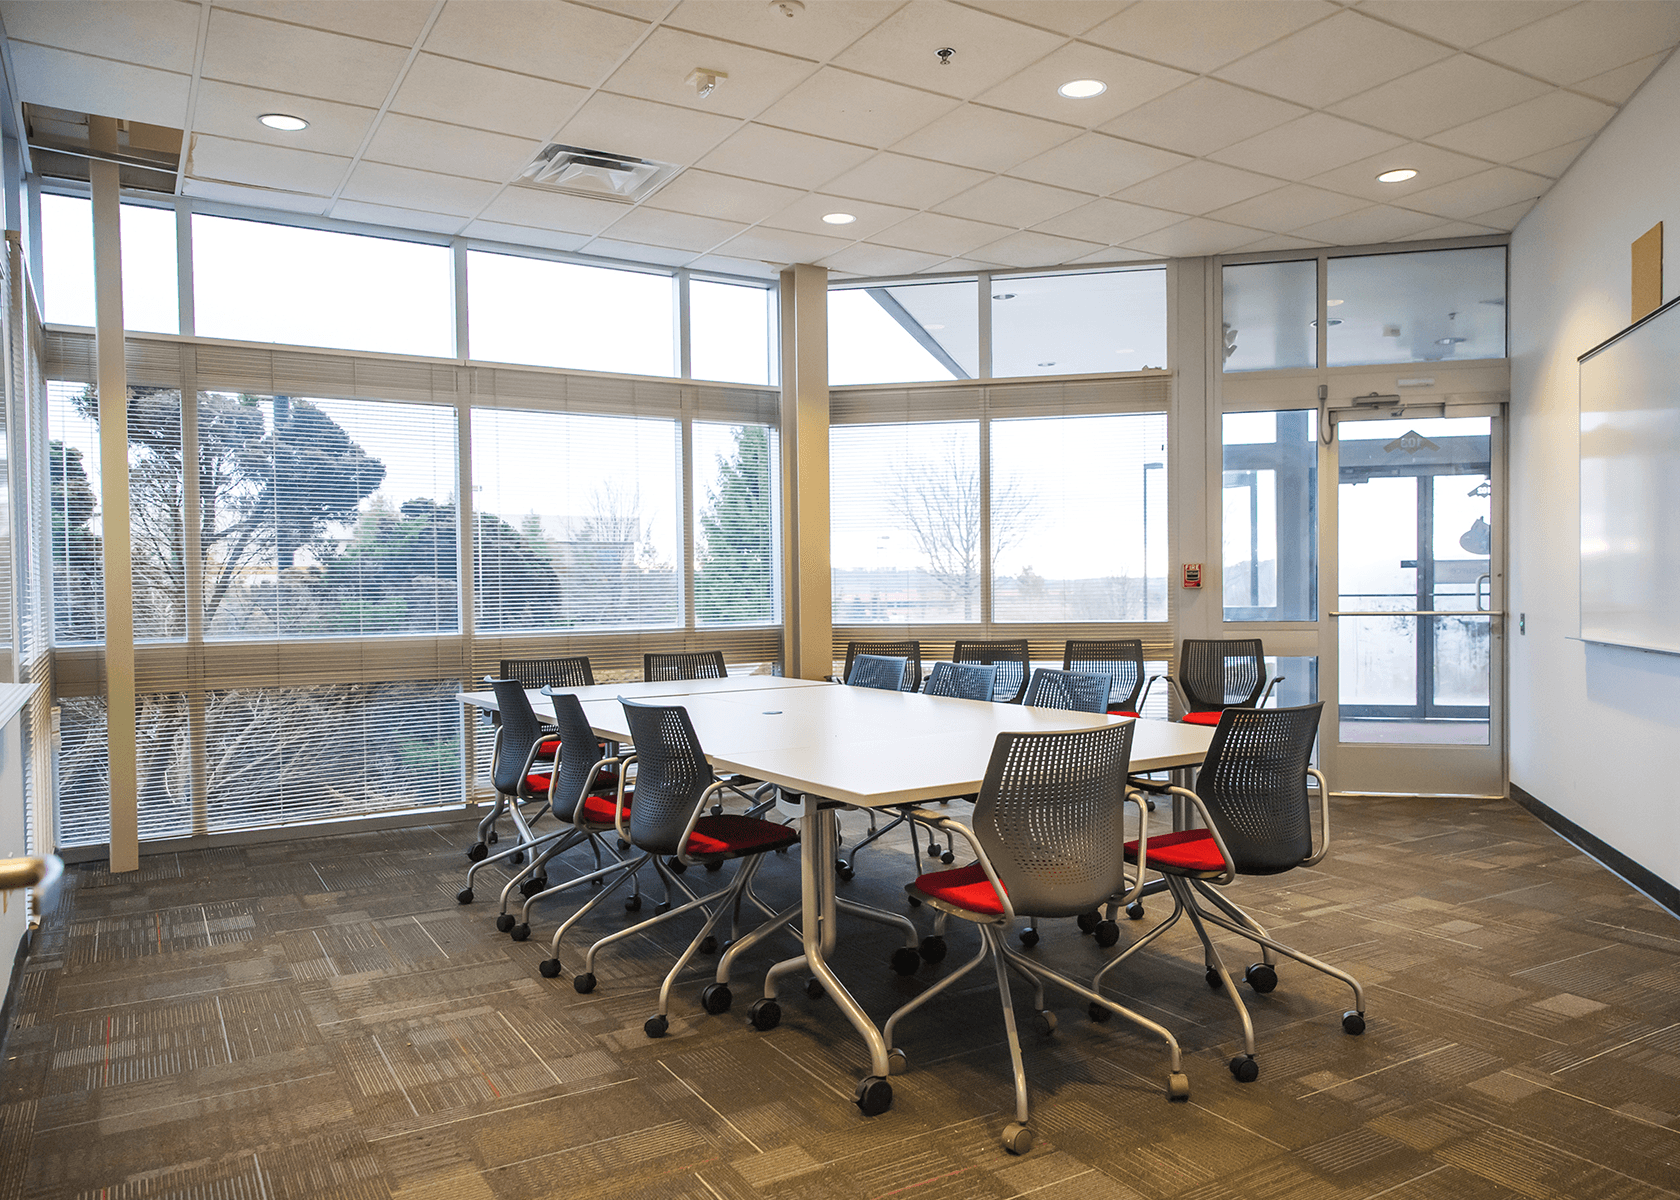 conference table with large floor-to-ceiling windows